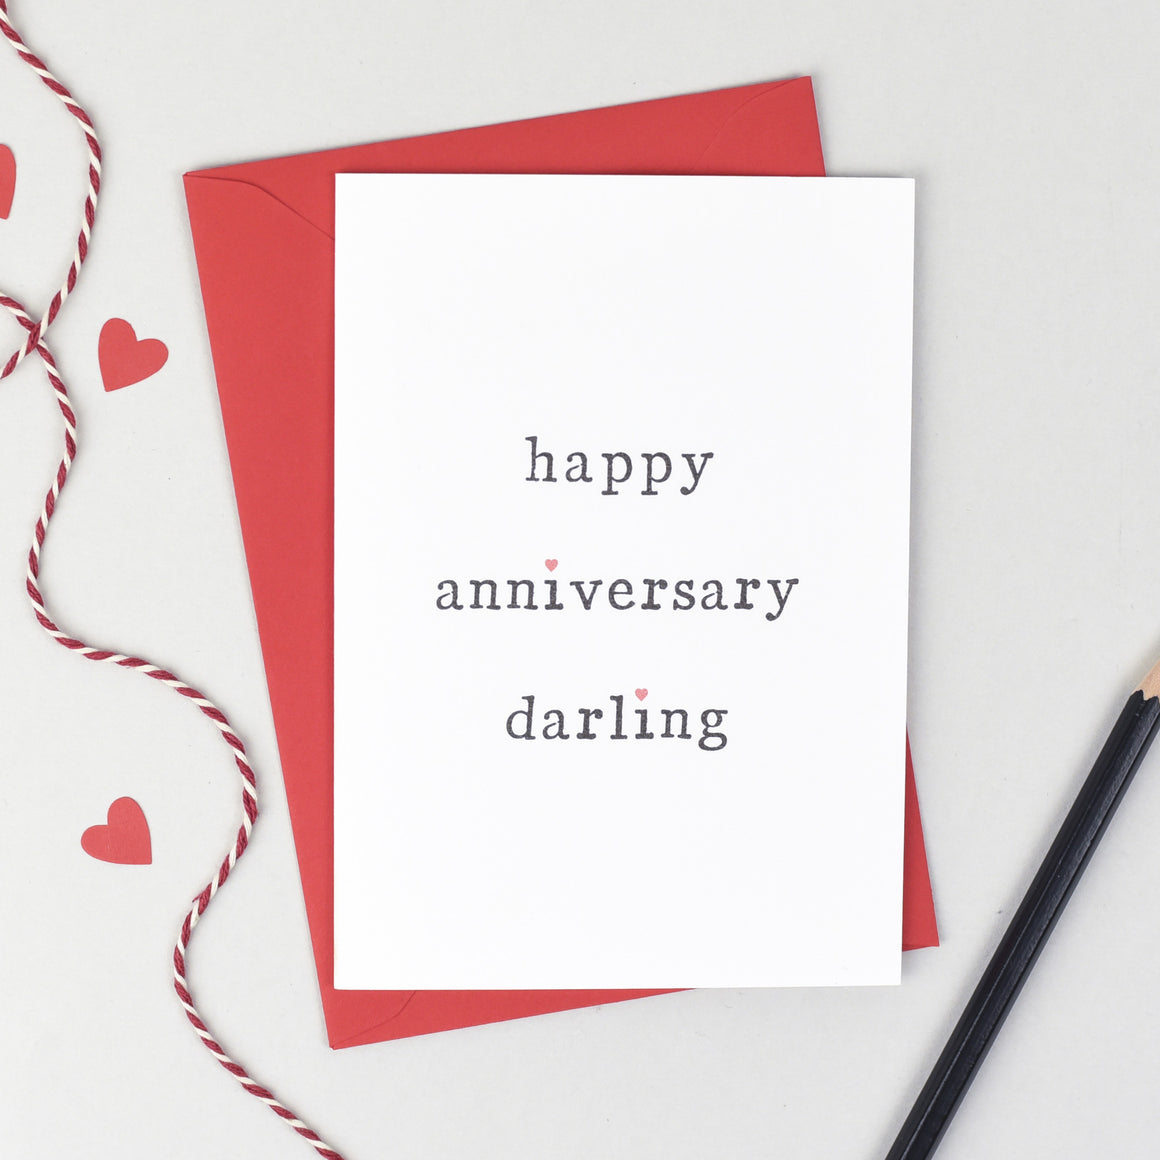 Happy Anniversary Card - The Two Wagtails